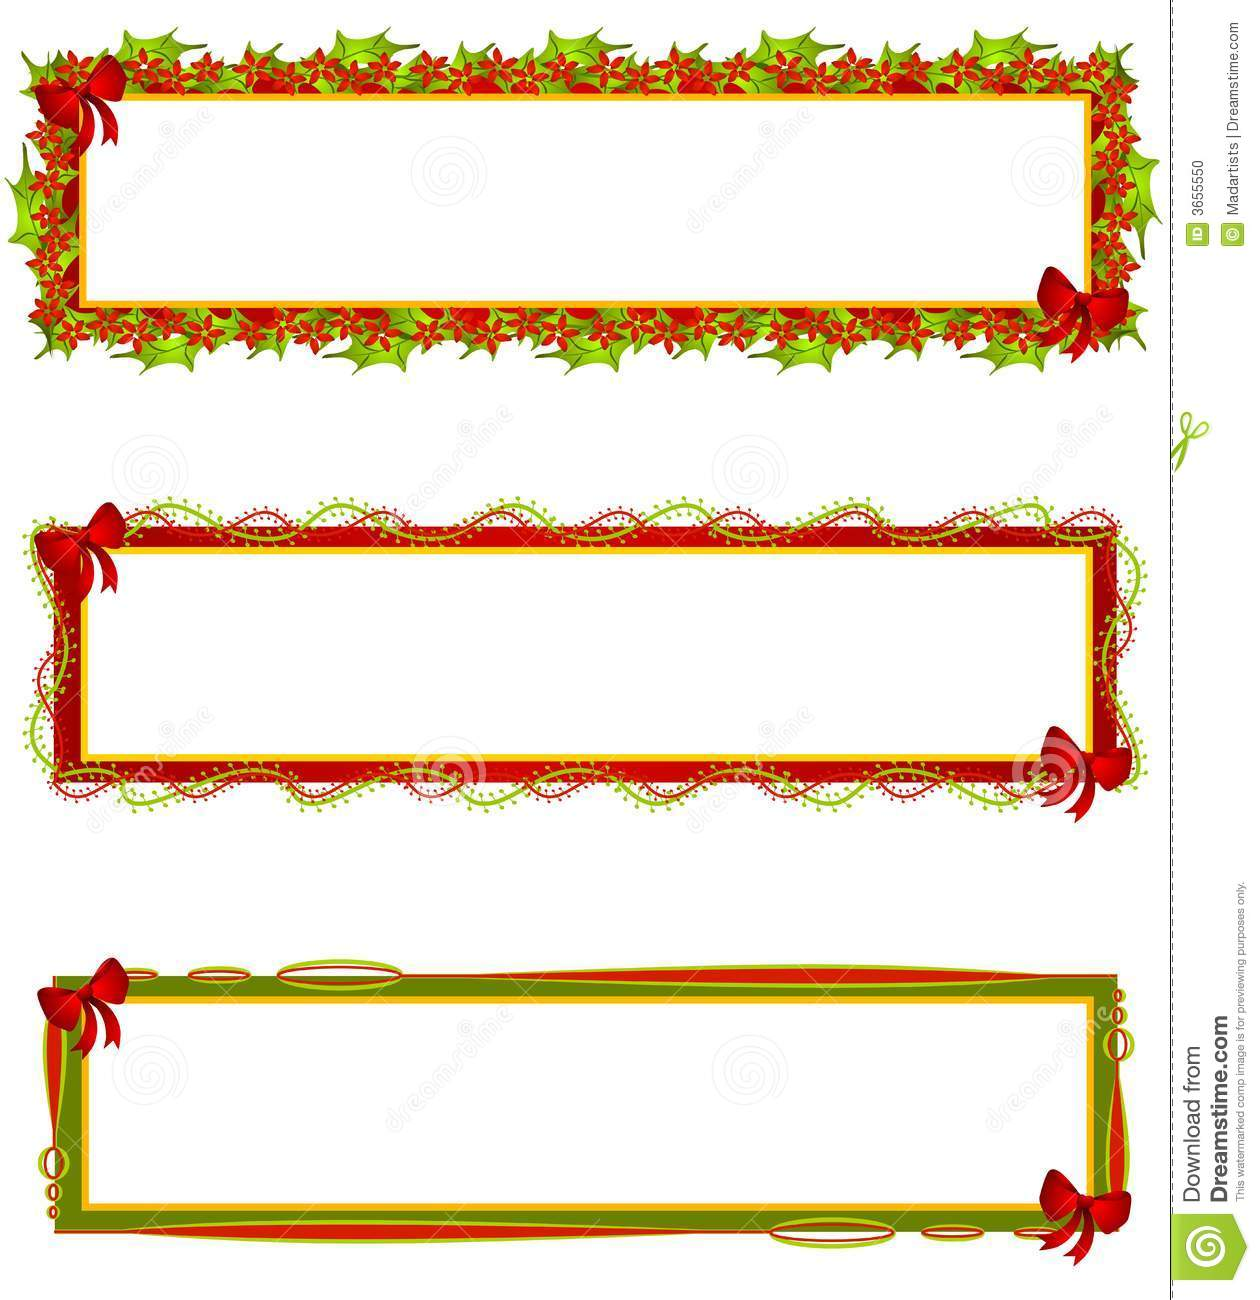 hight resolution of a clip art illustration of your choice of 3 christmas themed banners logos or labels a mix of decorative bows ribbons holly leaves and poinsettia